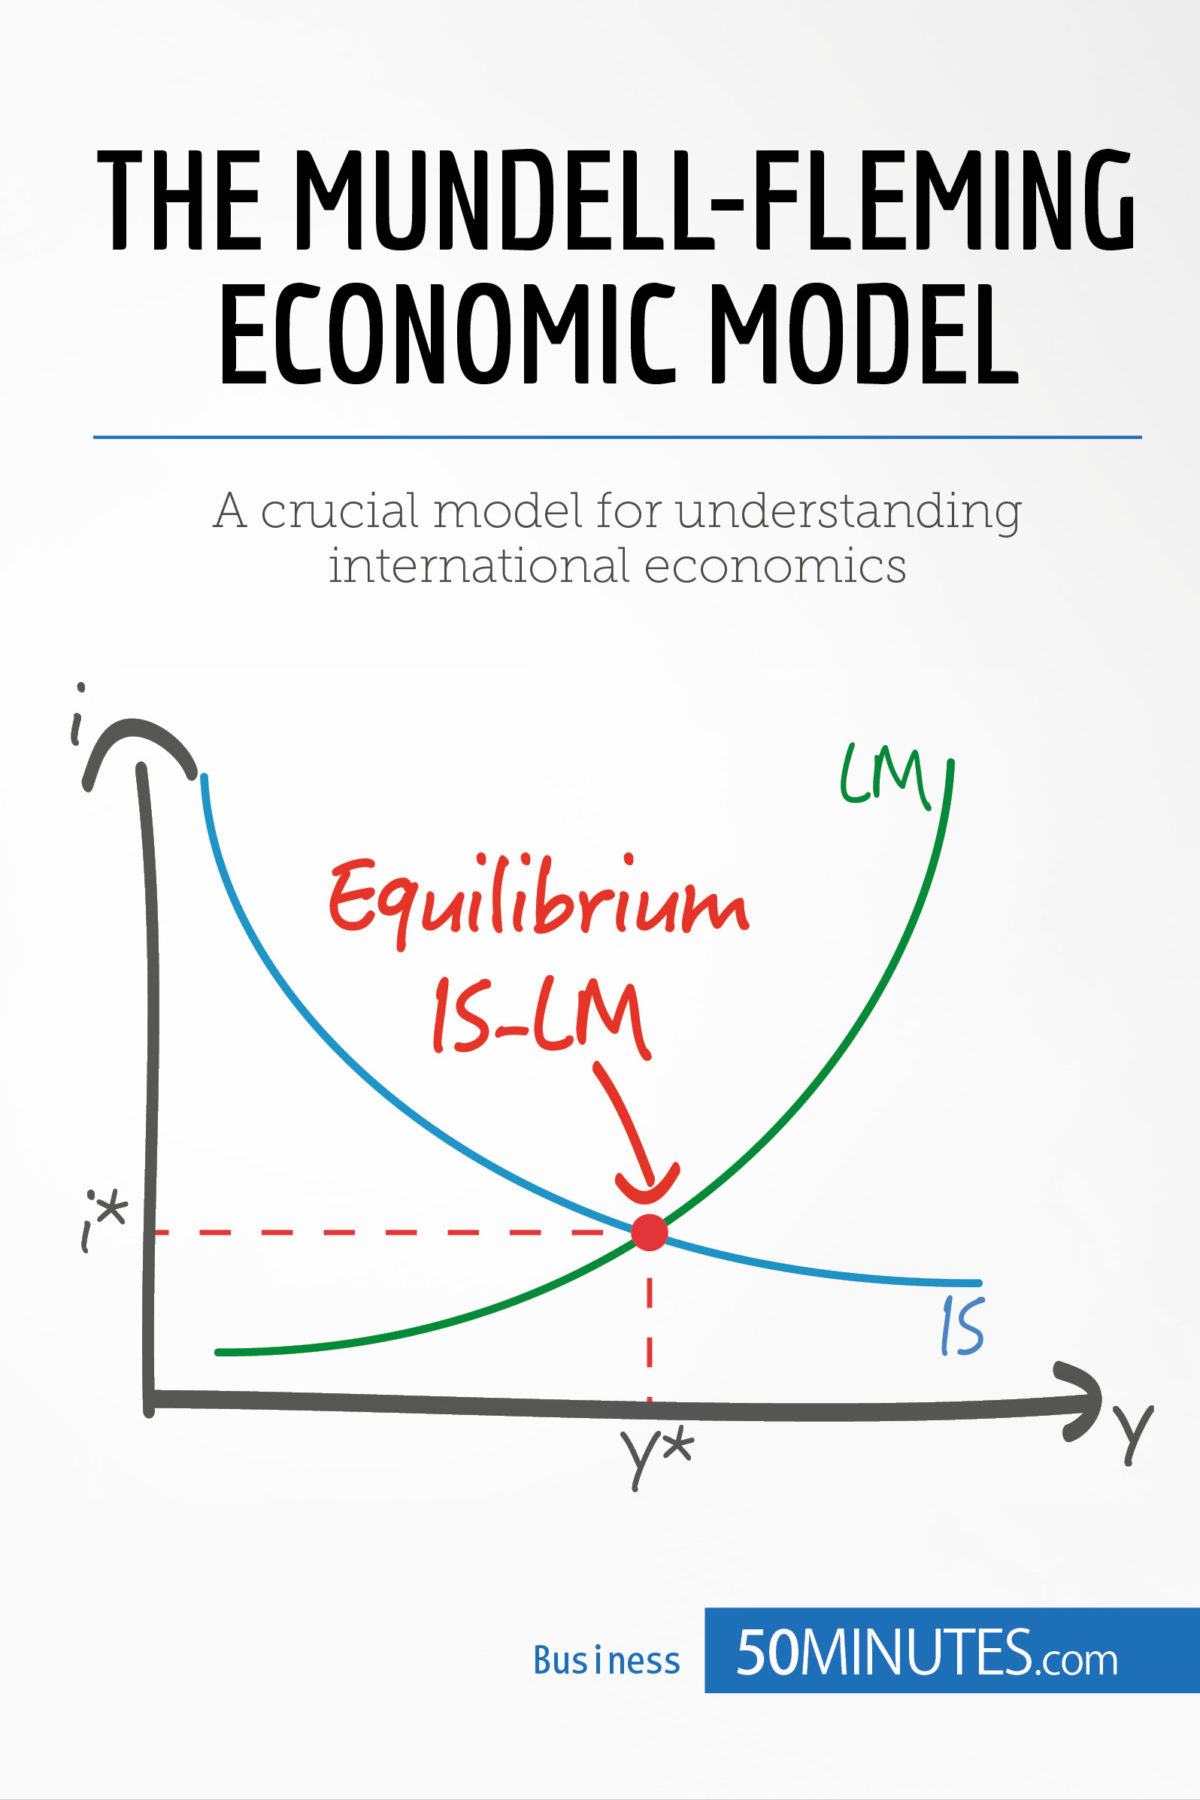 mundell flaming model An economic model is a hypothetical construct that embodies economic procedures using a set of variables in logical and/or quantitative correlations it is a simplistic method created to show.